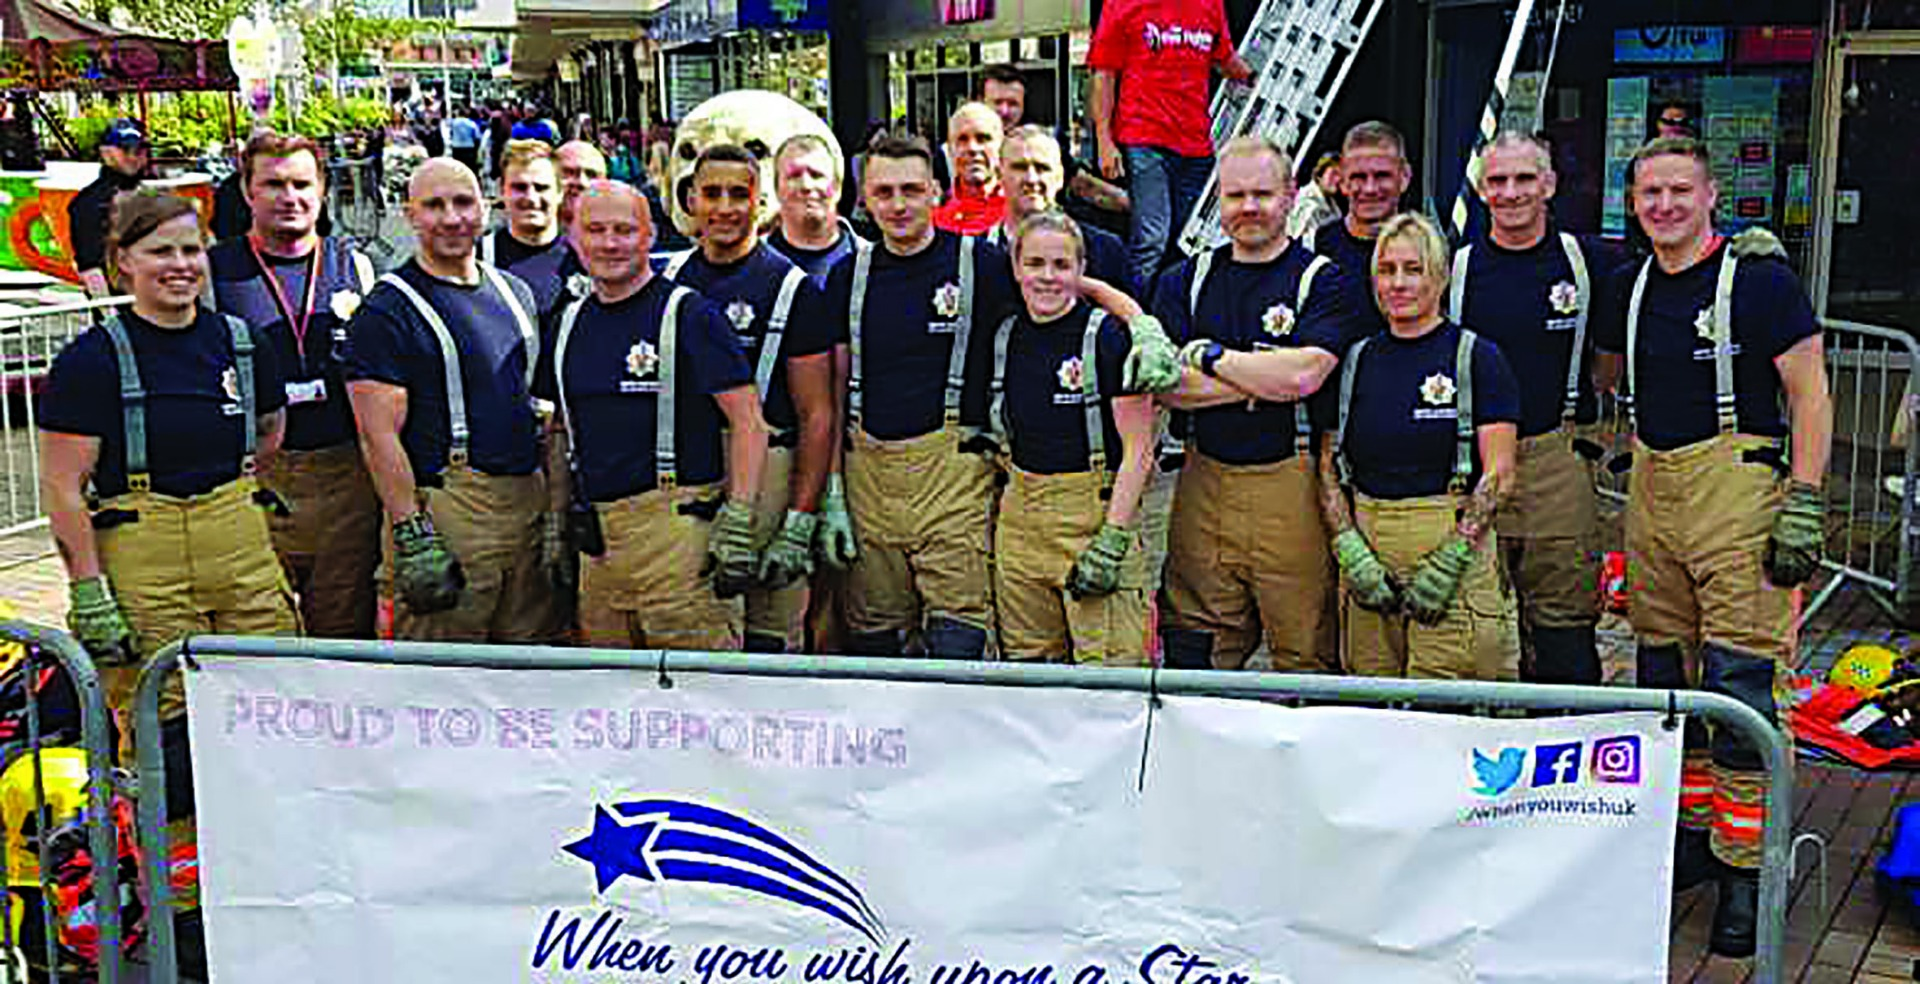 Firefighters tackle 'Everest' challenge